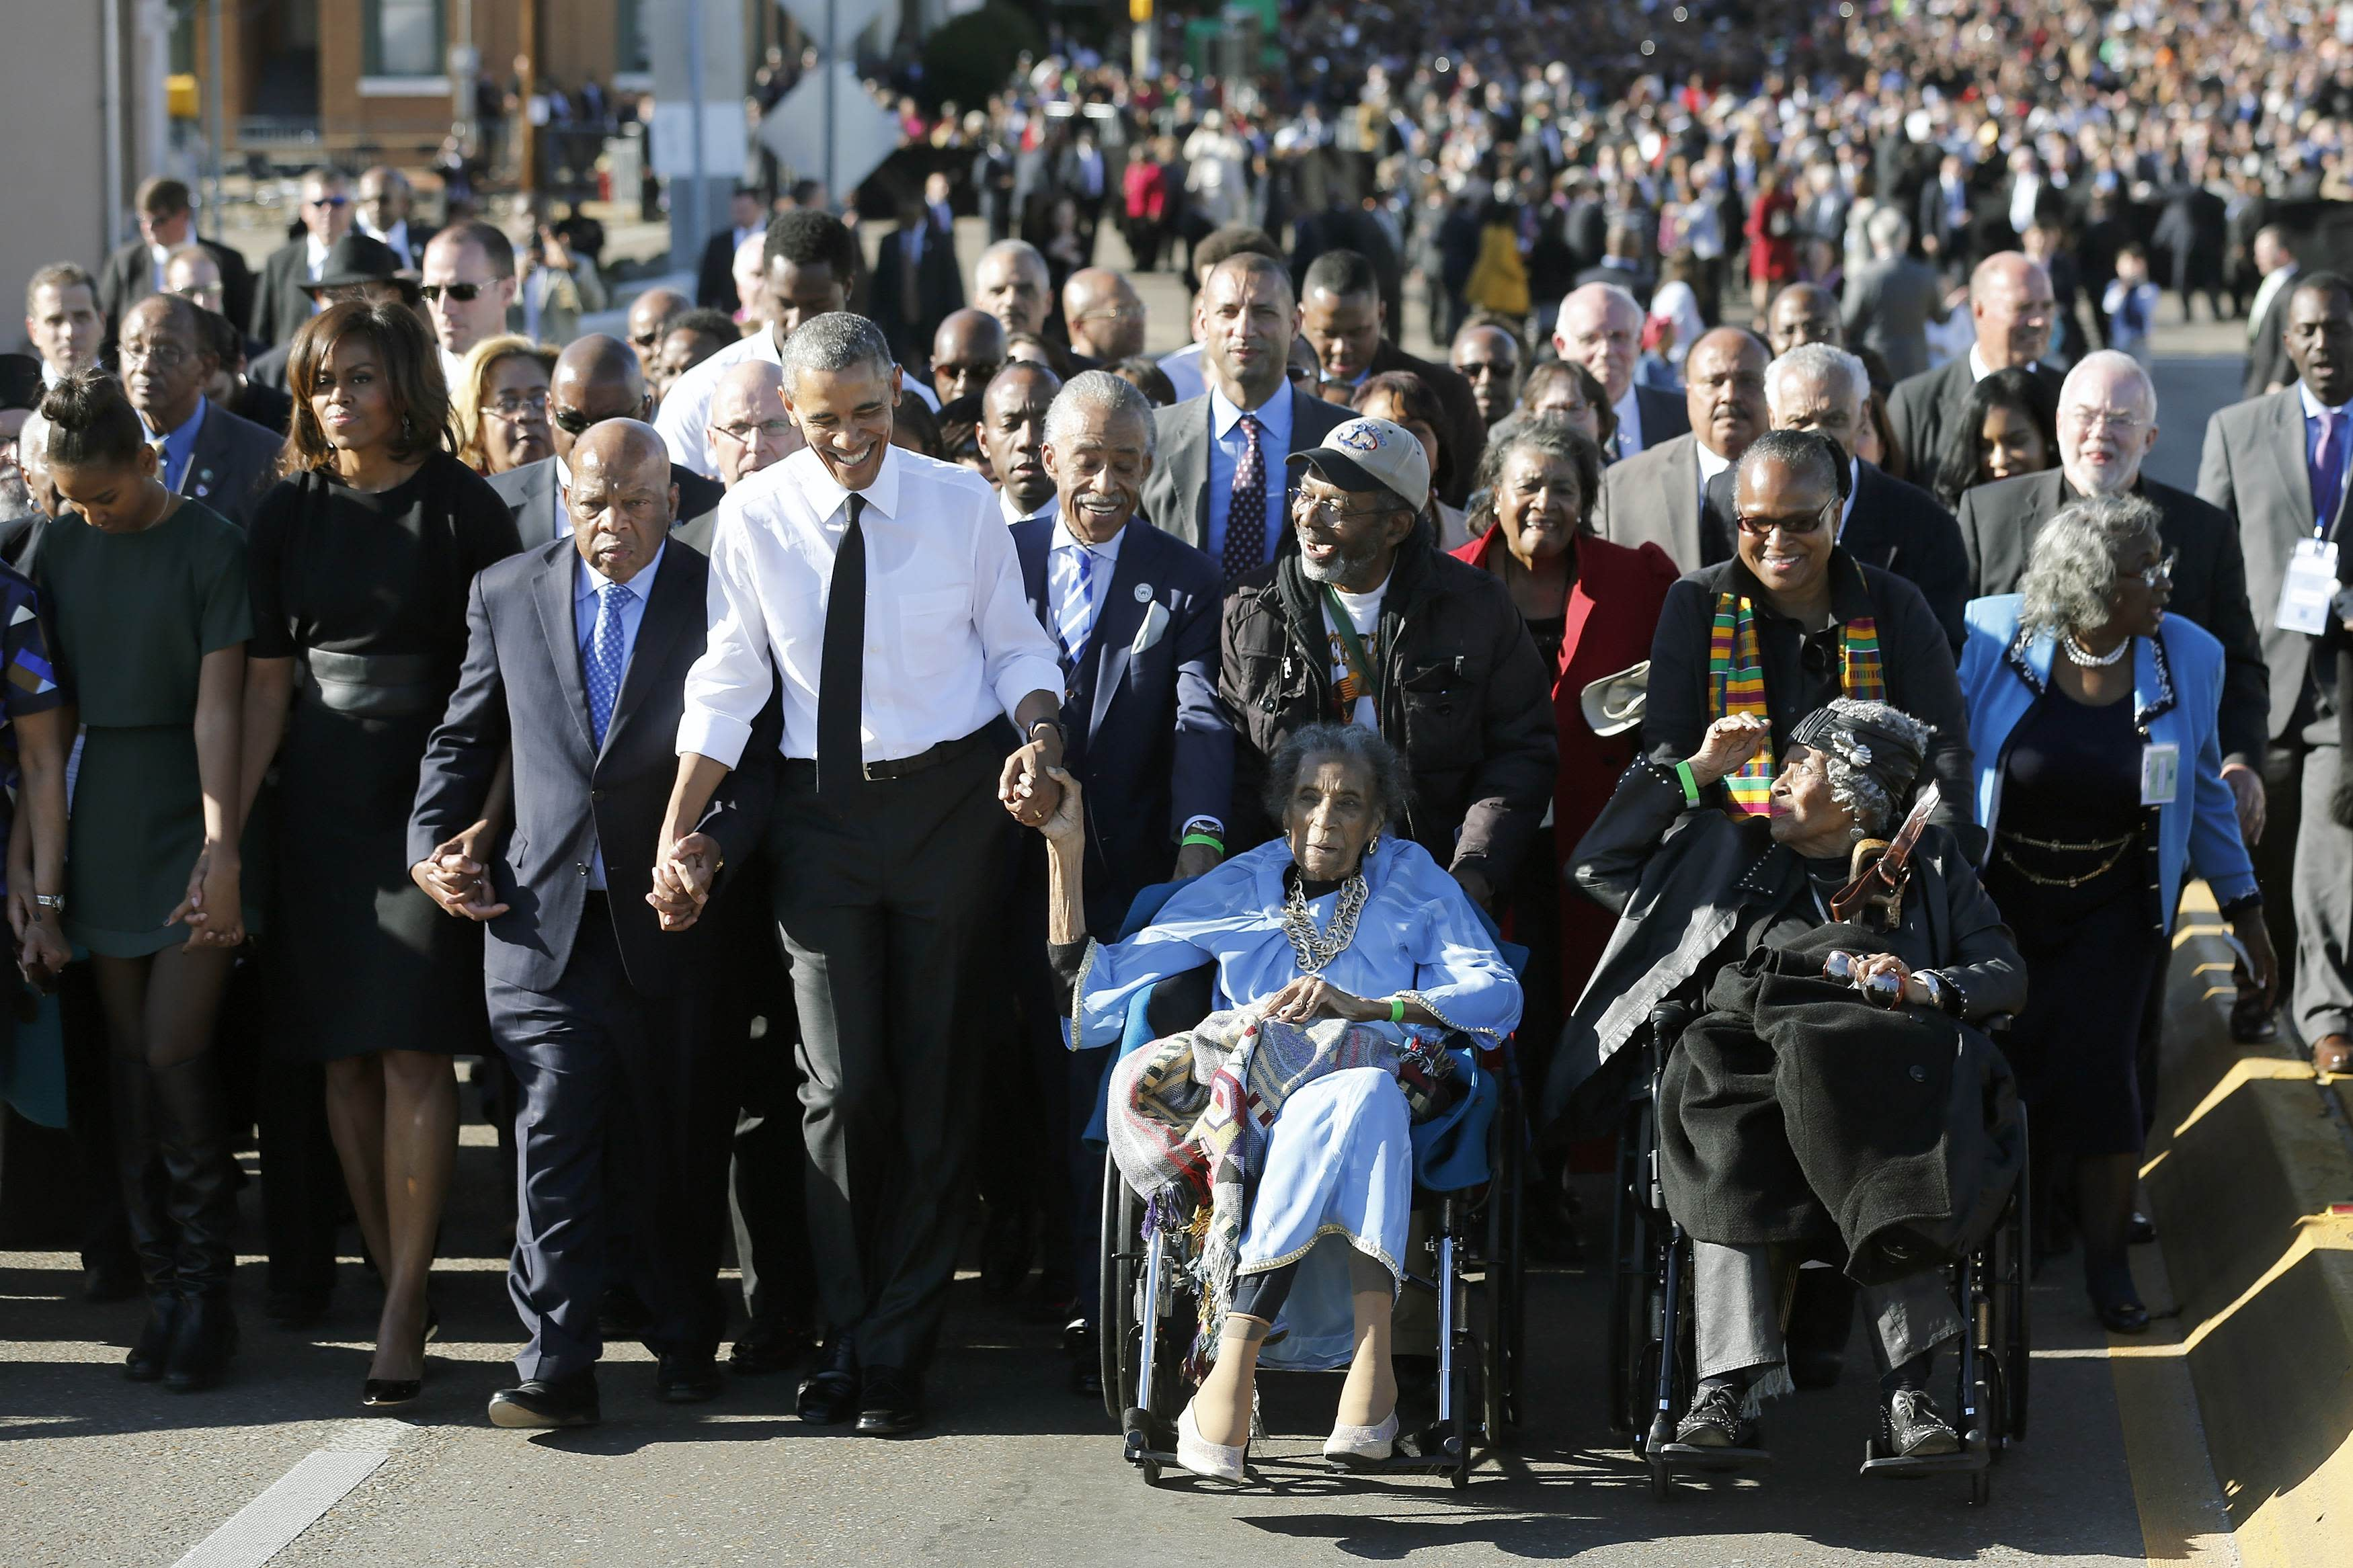 U.S. President Barack Obama (4th L) participates in a march with civil rights movement veterans across the Edmund Pettus Bridge in Selma, Alabama, March 7, 2015. Also pictured are first lady Michelle Obama (2nd L) and U.S. Representative John Lewis (D-GA) (3rd L), who was beaten by police on the bridge as a young man. The event comes on the 50th anniversary of the 'Bloody Sunday' march at the bridge, where police and state troopers beat and used tear gas against peaceful marchers who were advocating against racial discrimination at the voting booth. REUTERS/Jonathan Ernst (UNITED STATES - Tags: POLITICS ANNIVERSARY SOCIETY)